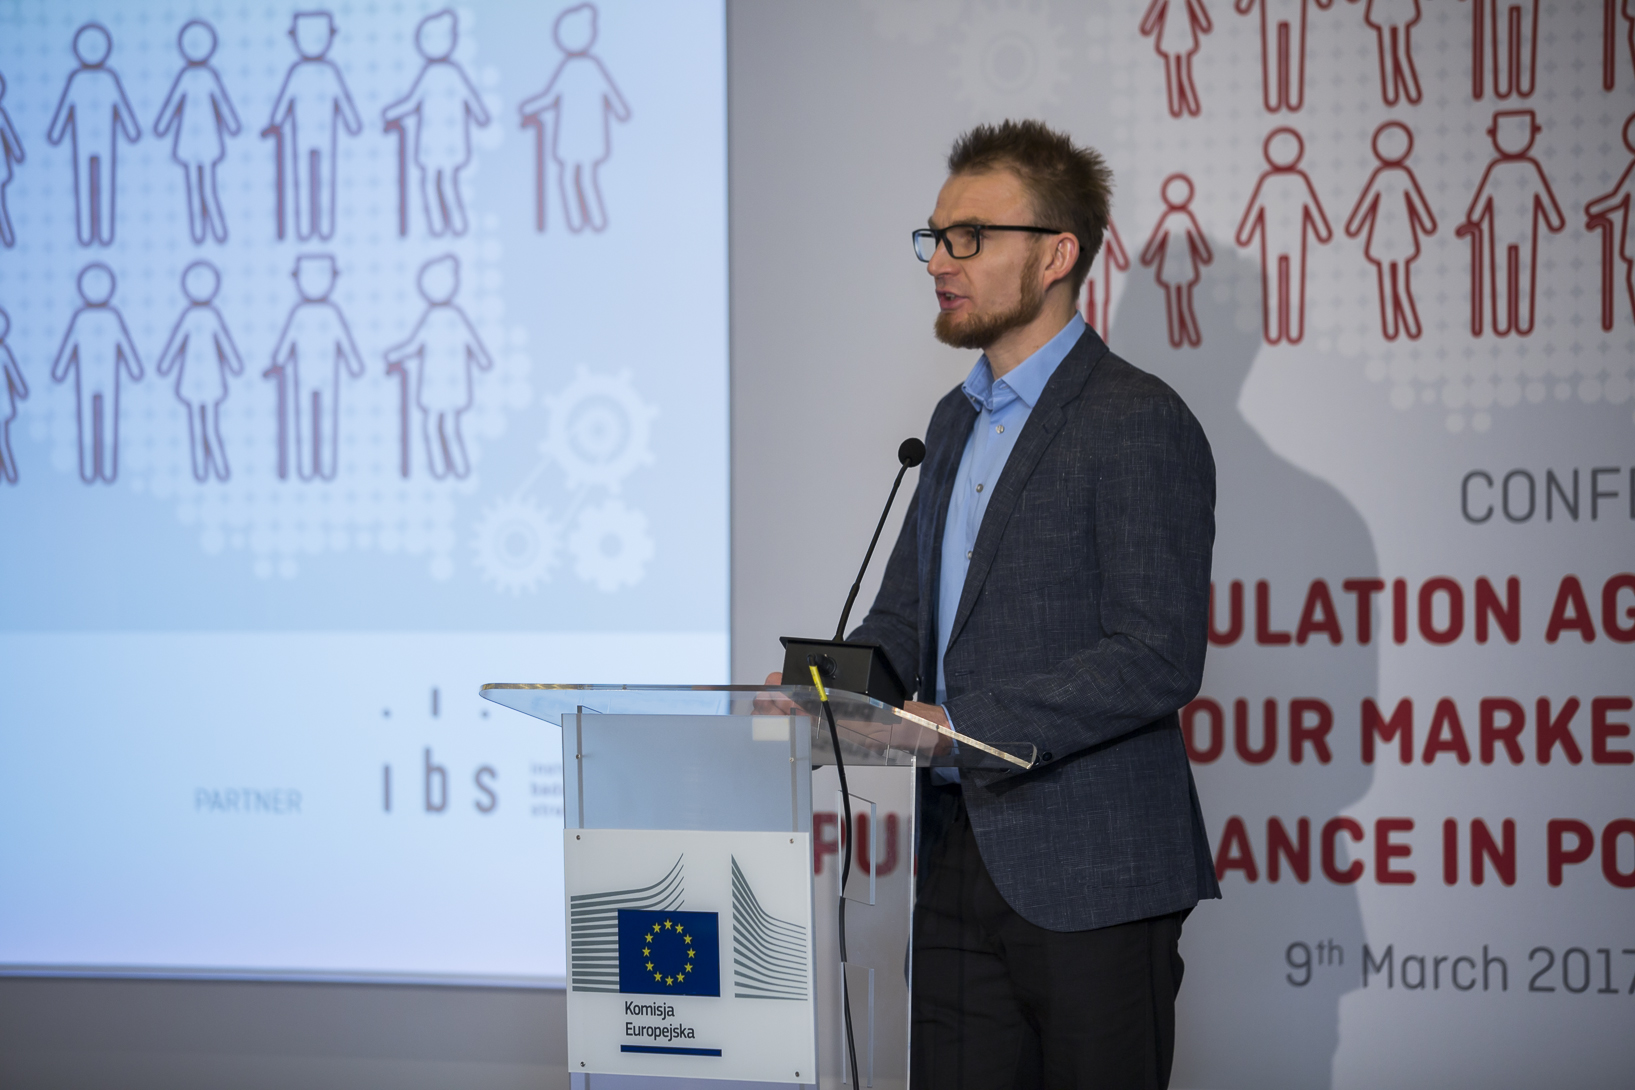 conference population ageing labour market and public finance in piotr lewandowski showed the trends in the labour force participation rates of the older population over the last 90 years although life expectancy in